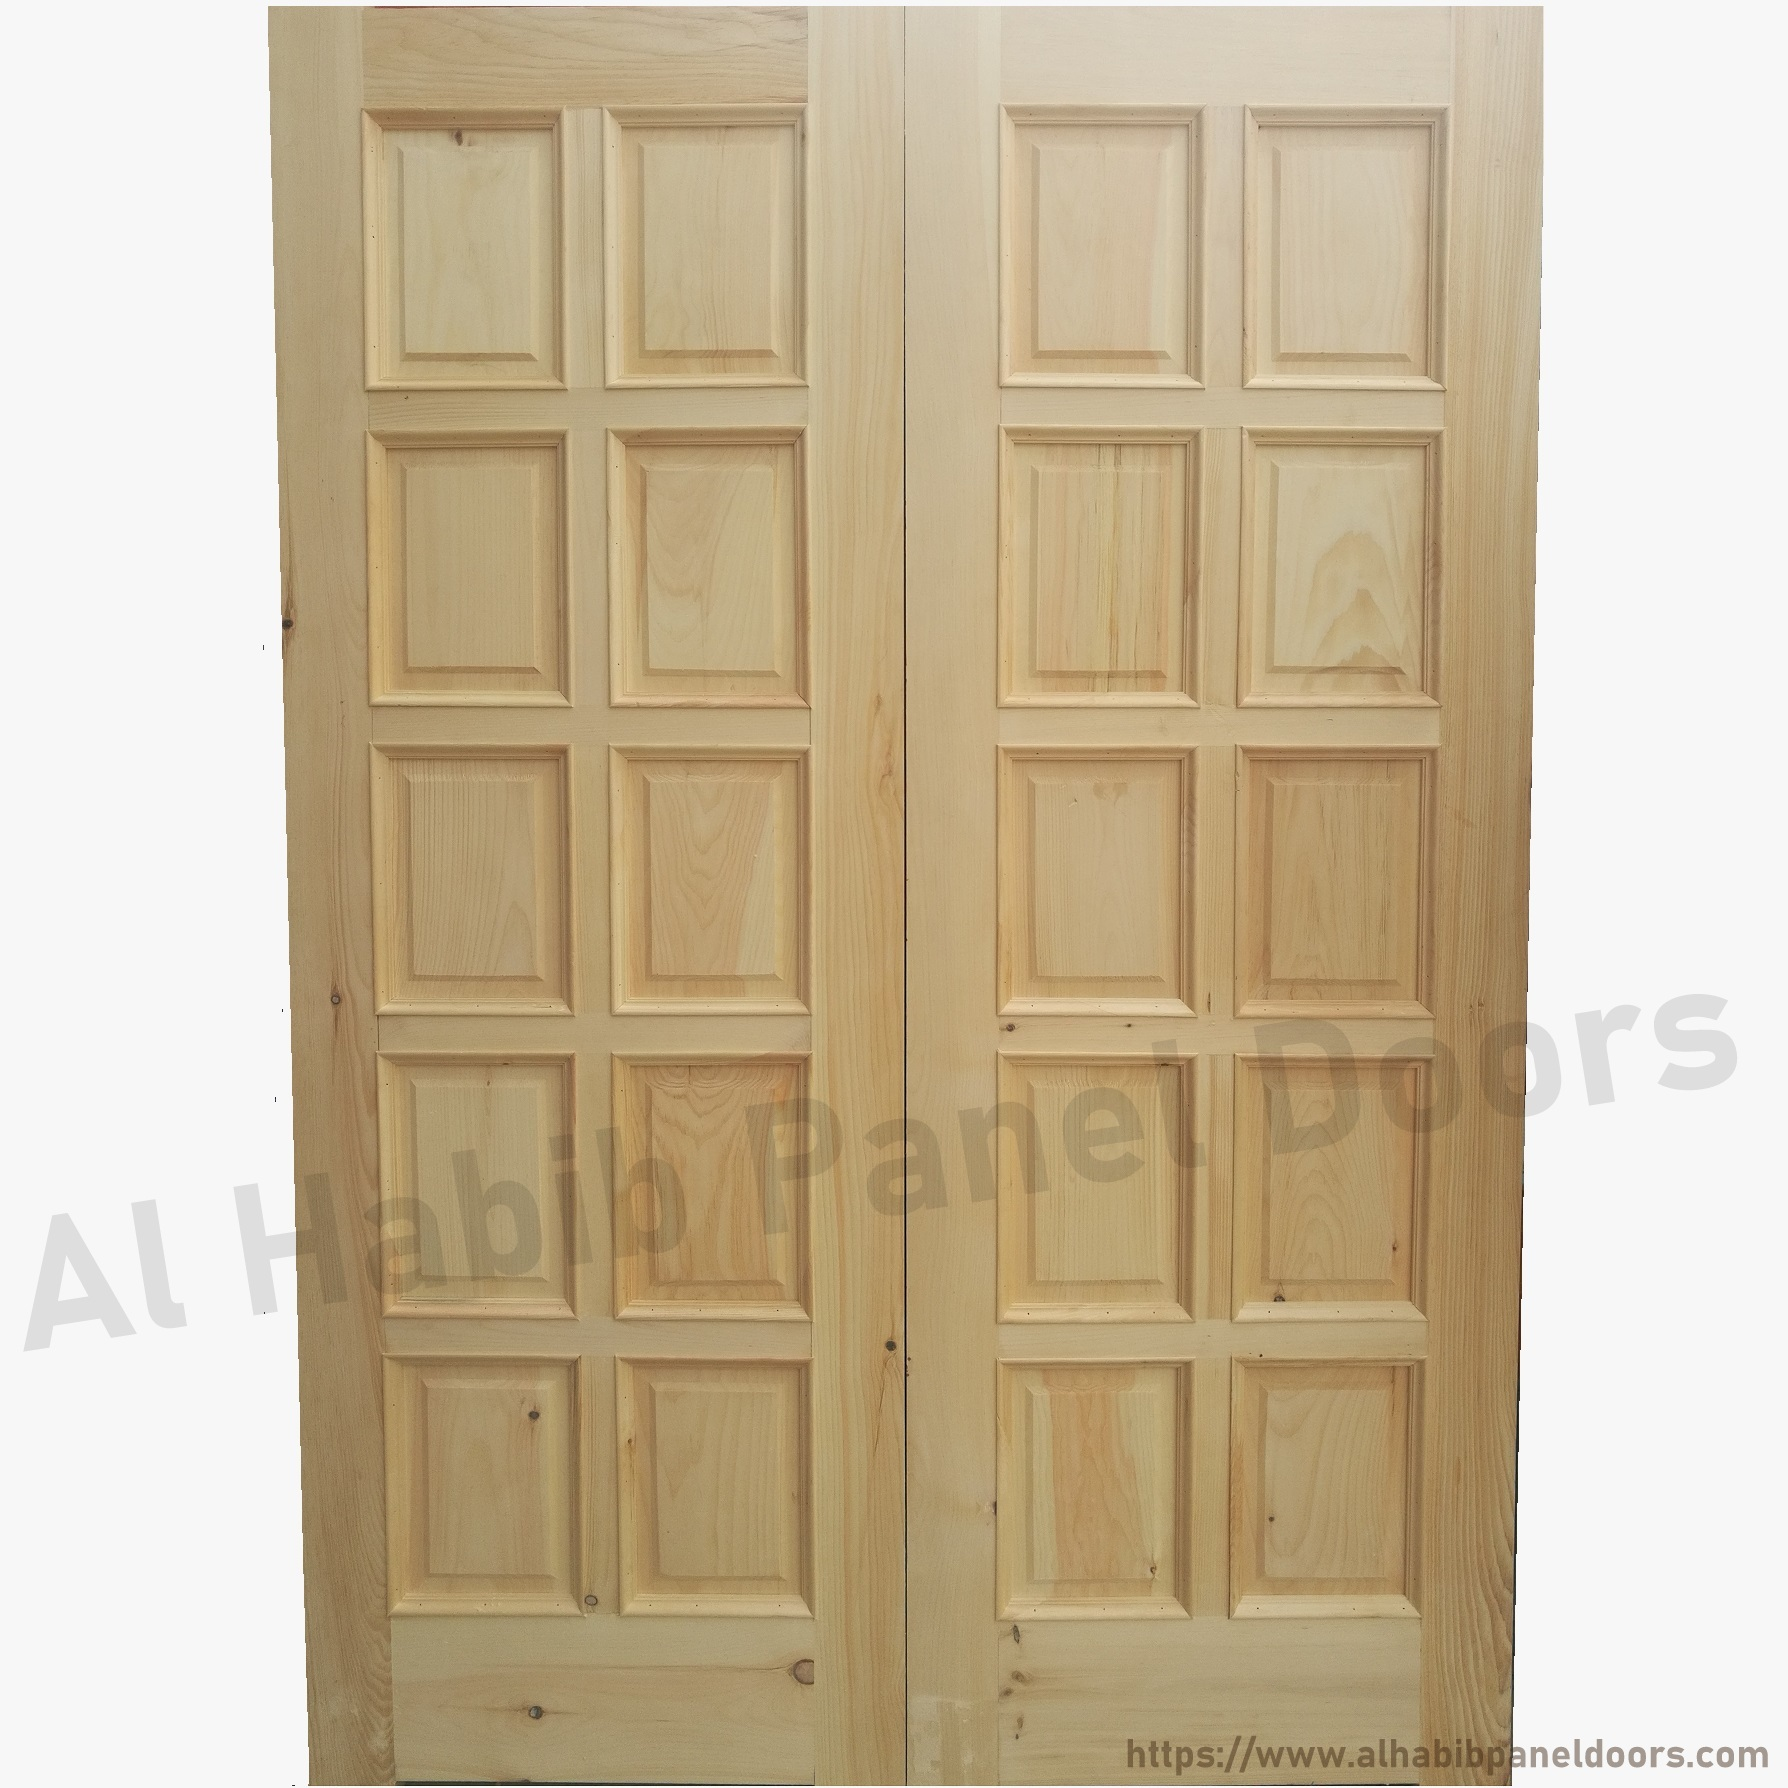 Latest wooden main double door designs native home for Big main door designs